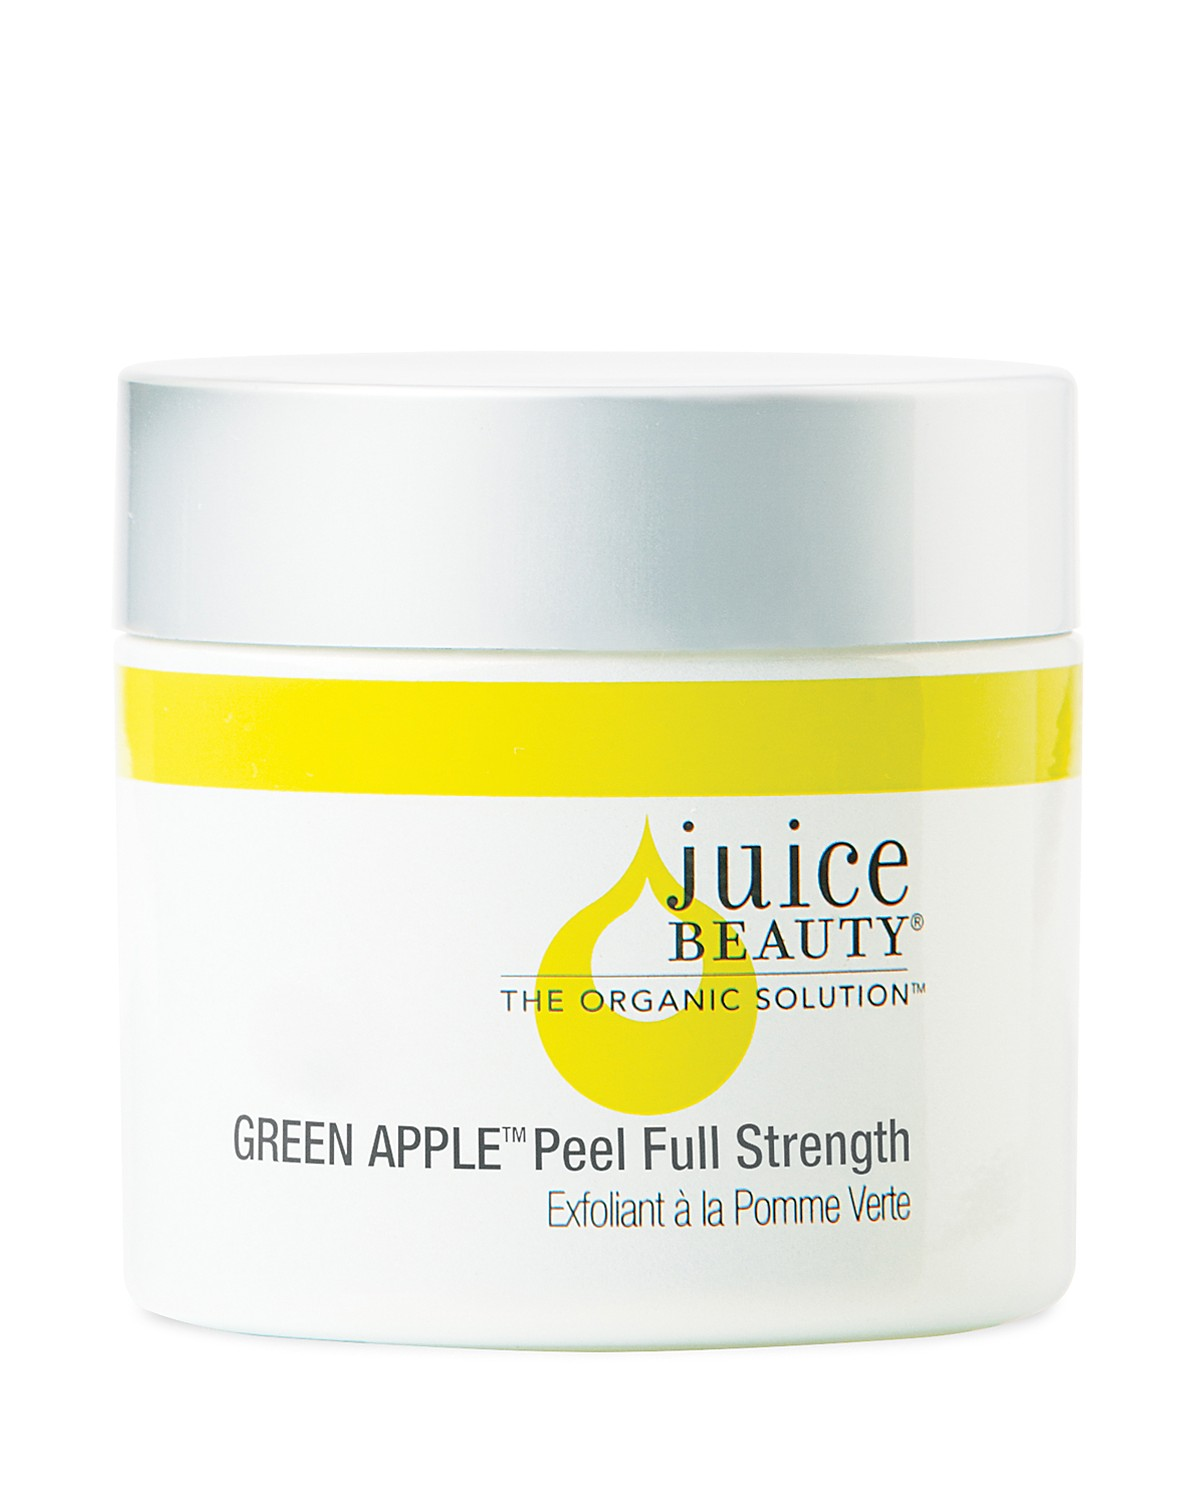 Juice Beauty® GREEN APPLE Peel Full Strength Exfoliating Mask